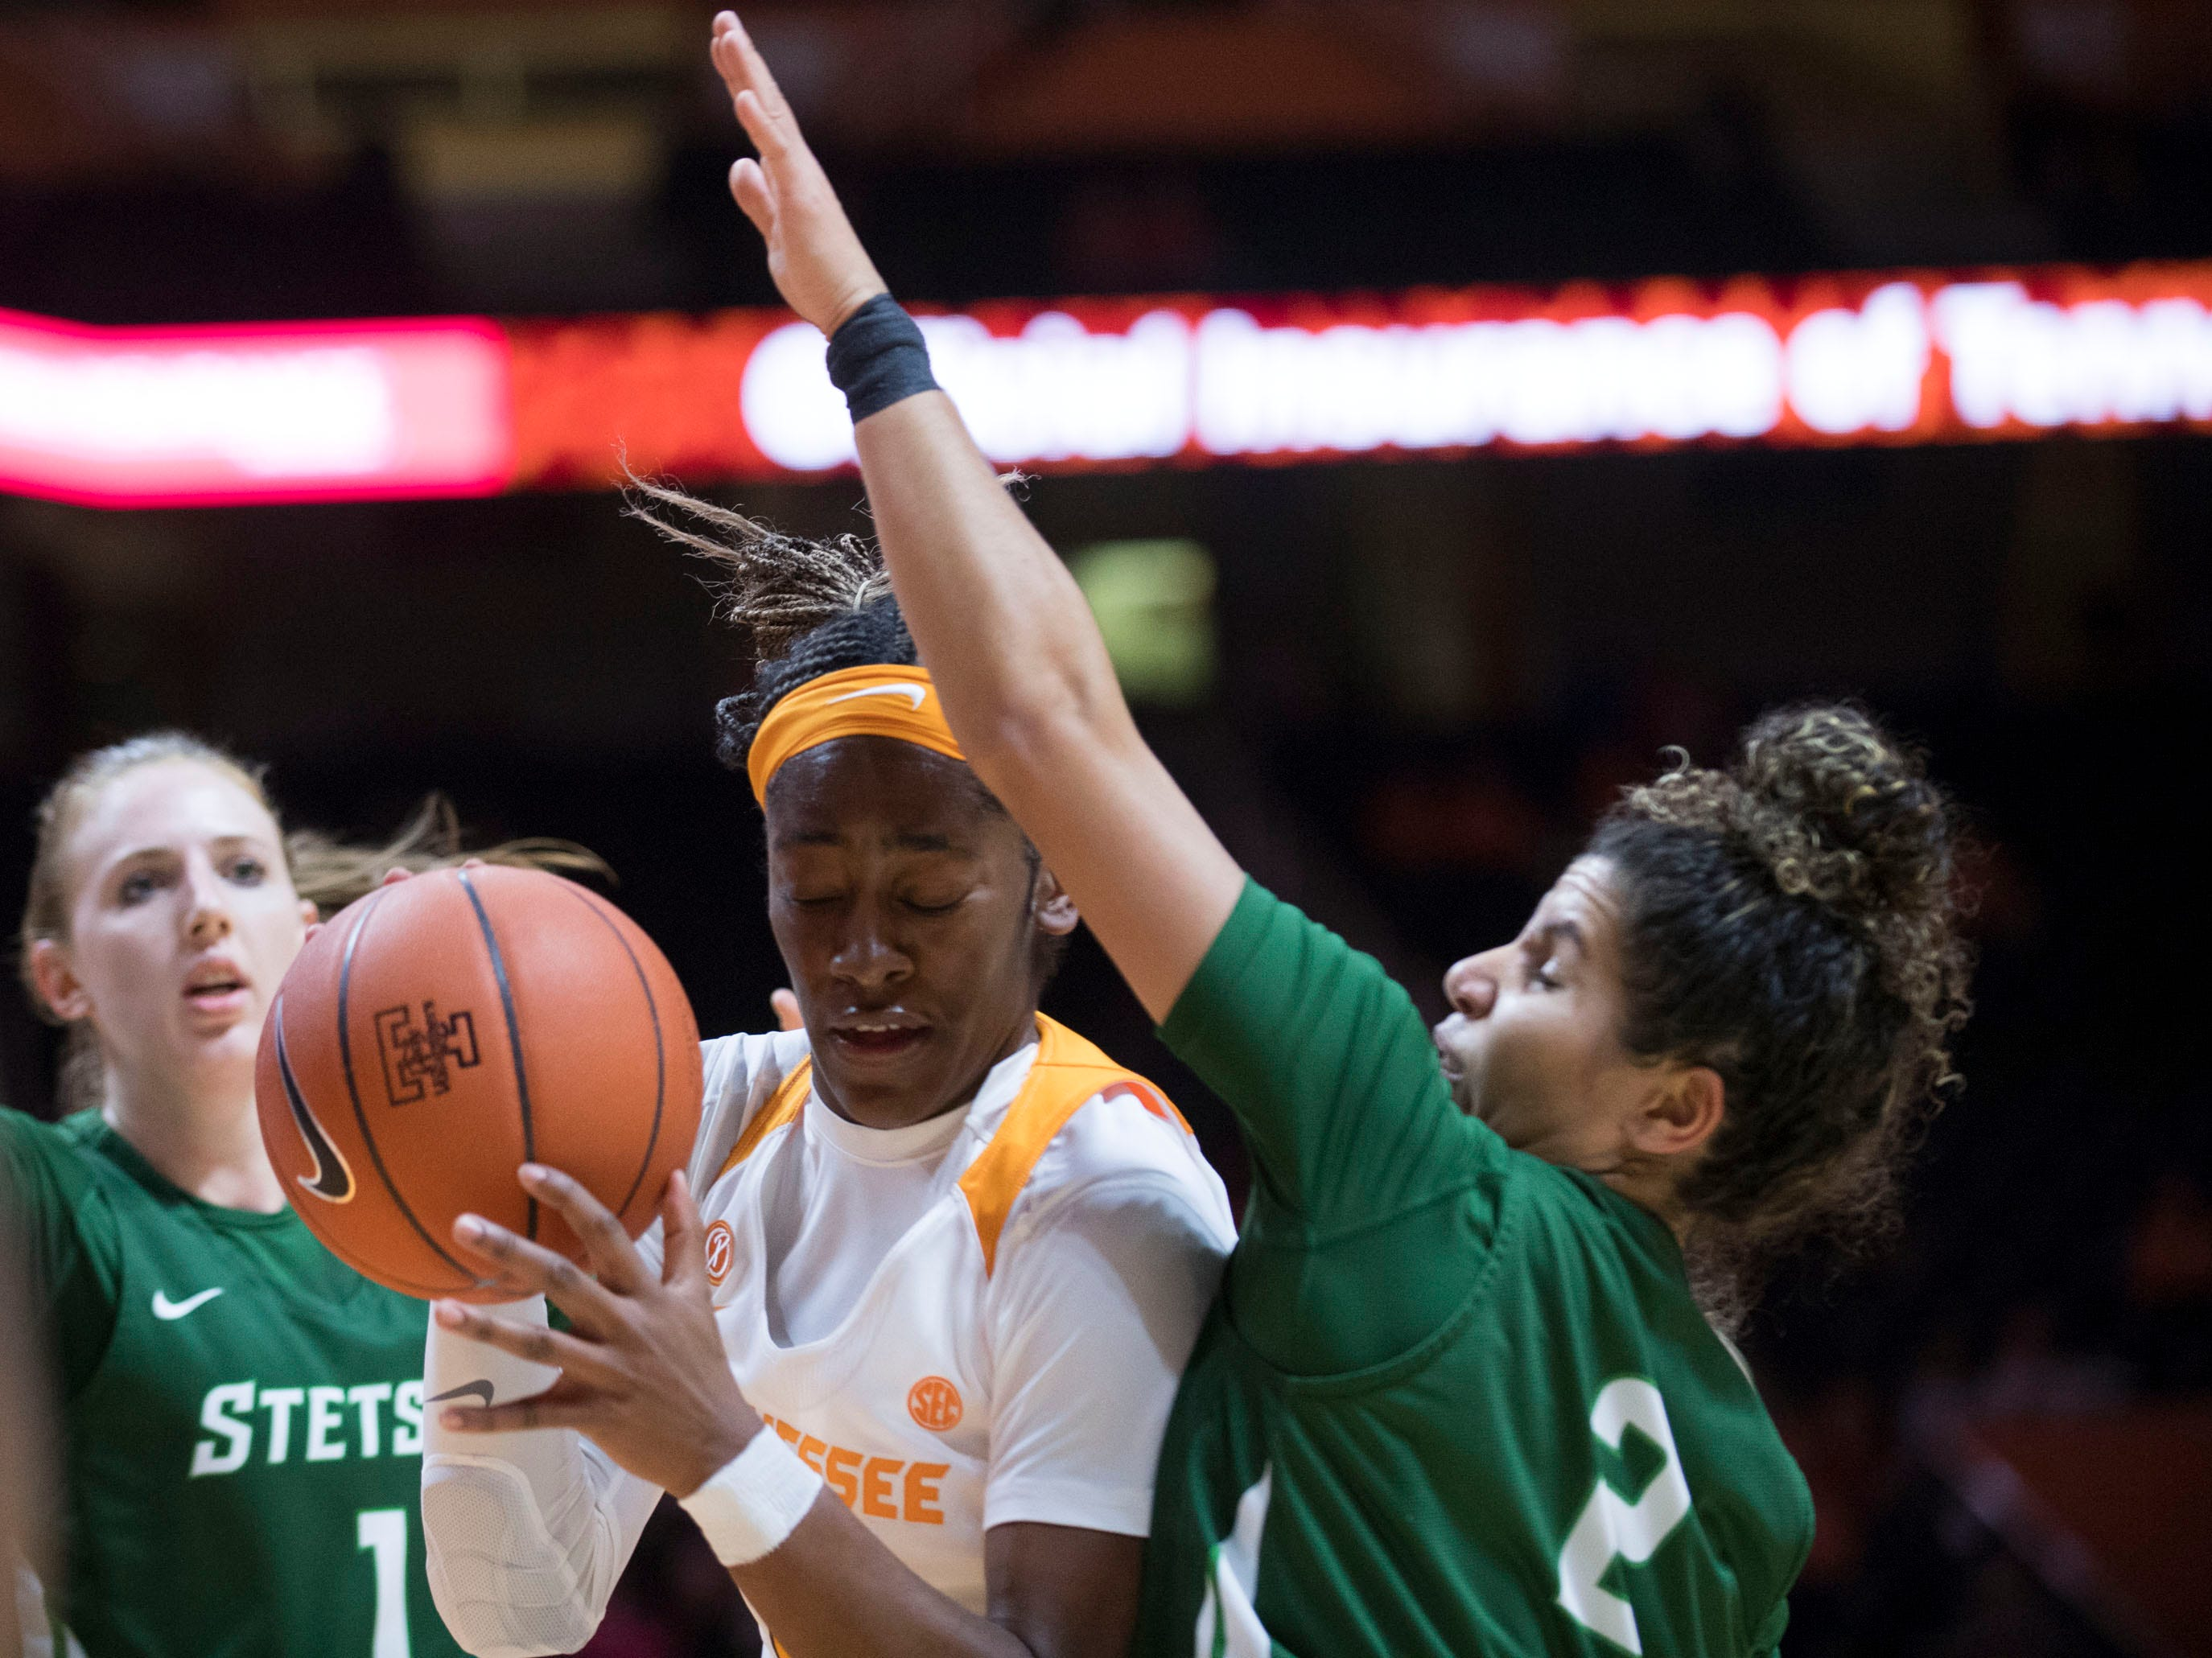 Tennessee's Zaay Green (14) is defended by Stetson's McKenna Beach (2) at Thompson-Boling Arena on Wednesday, December 5, 2018.